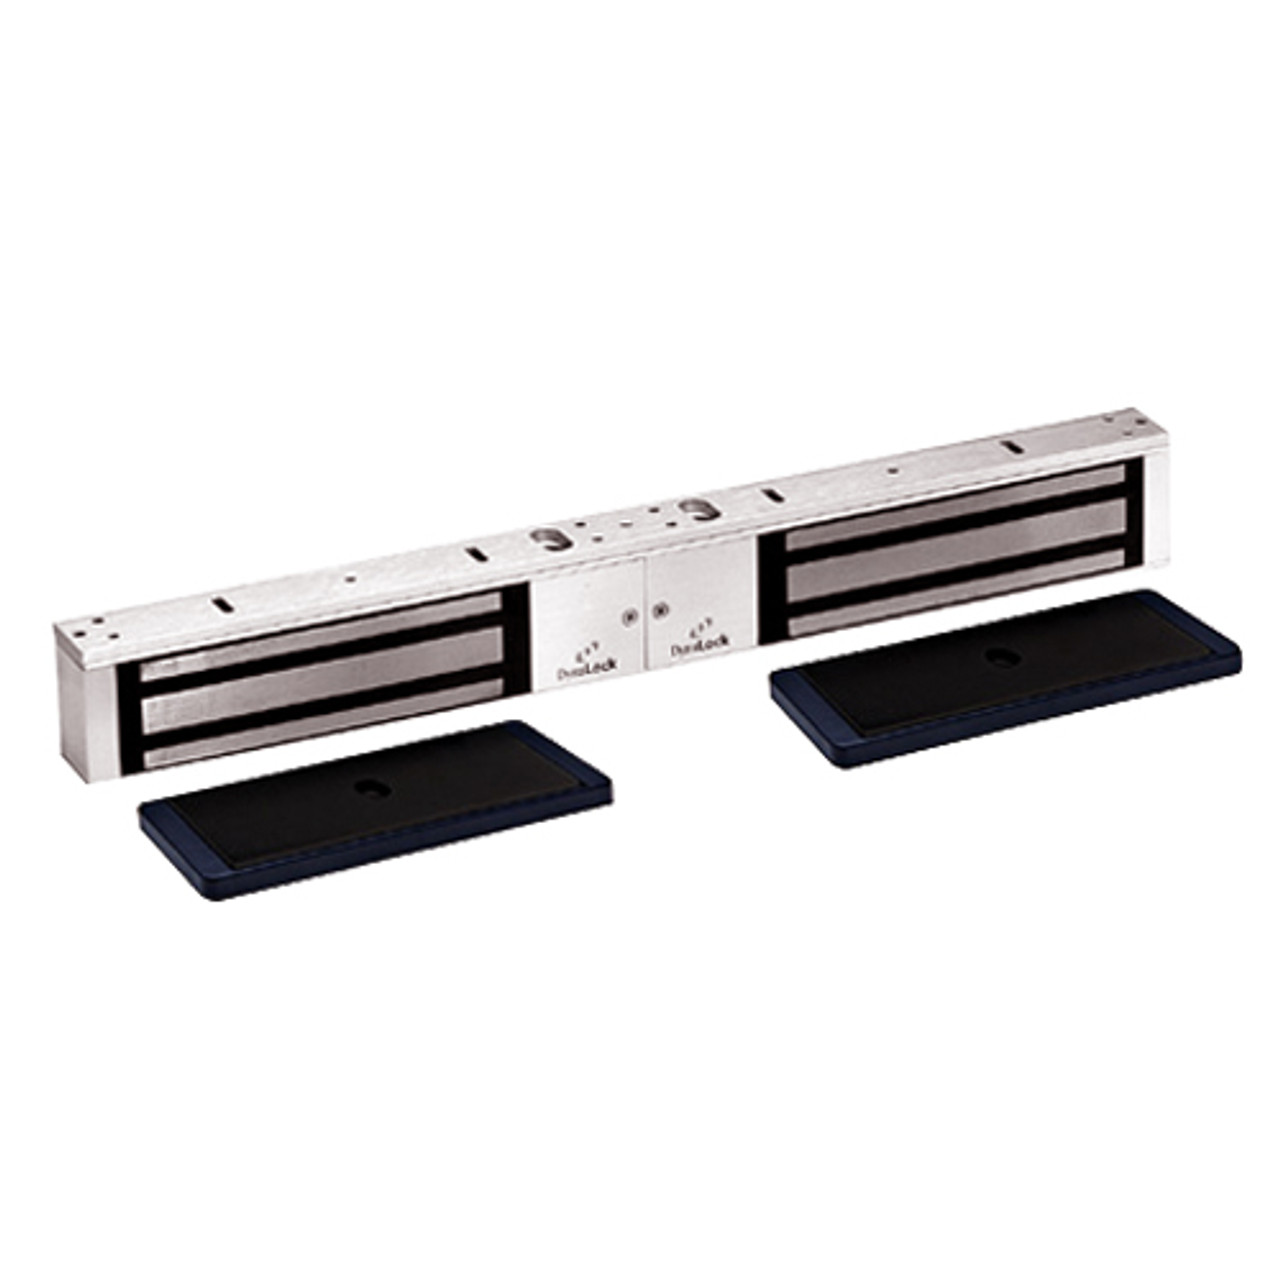 2022-US28 DynaLock 2000 Series 1200 LB Holding Force Double Outswing Electromagnetic Lock in Satin Aluminum